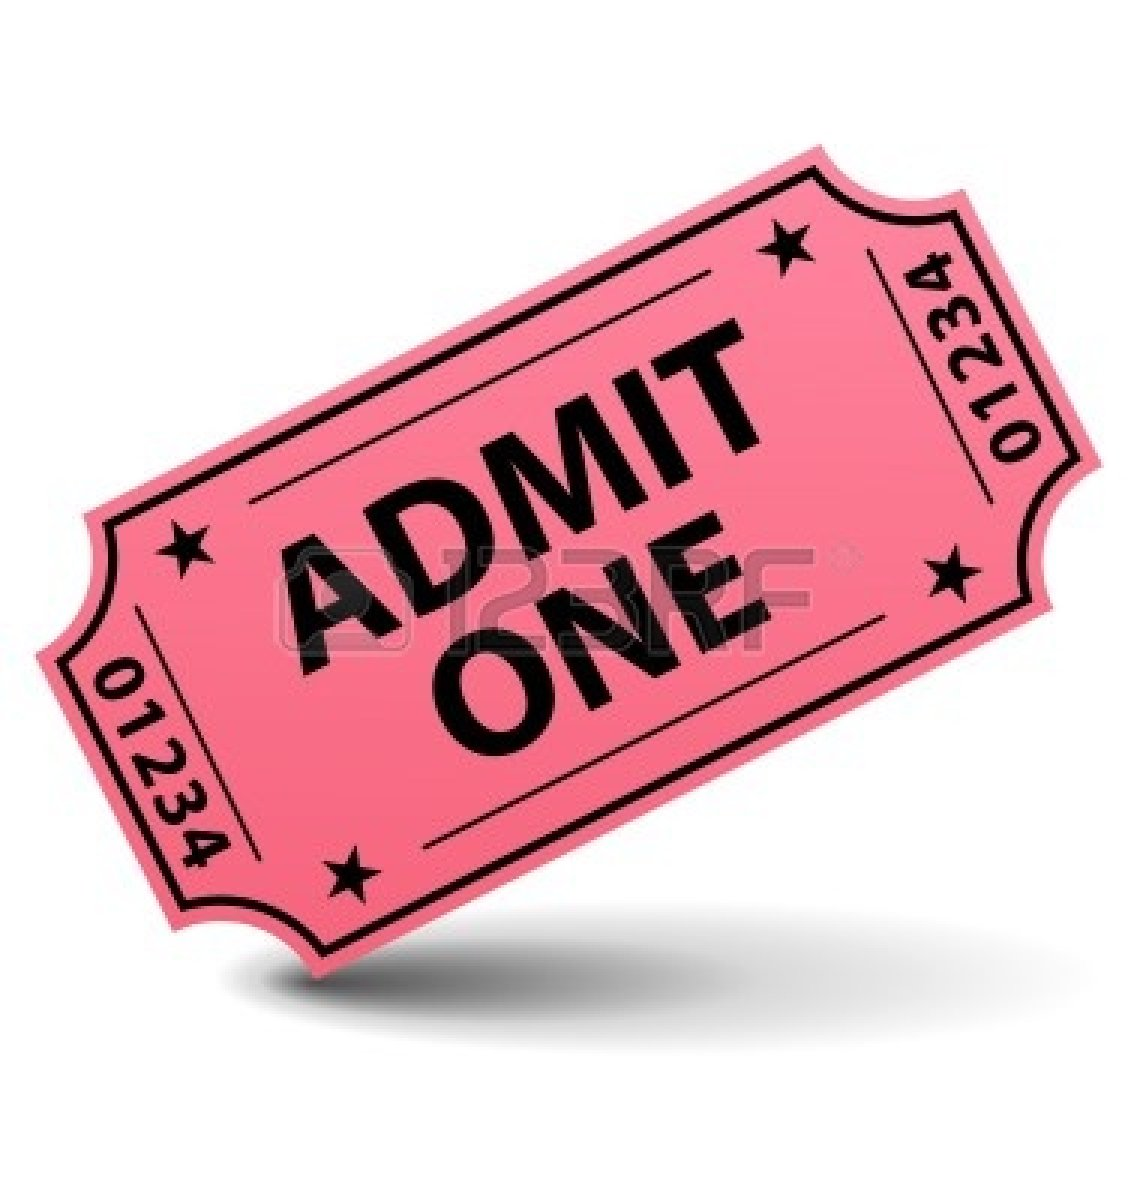 Blank Admit One Ticket Template Movie Ticket Vector 9146388 Admit One  Ticket Blank Admit One Ticket  Blank Admit One Ticket Template